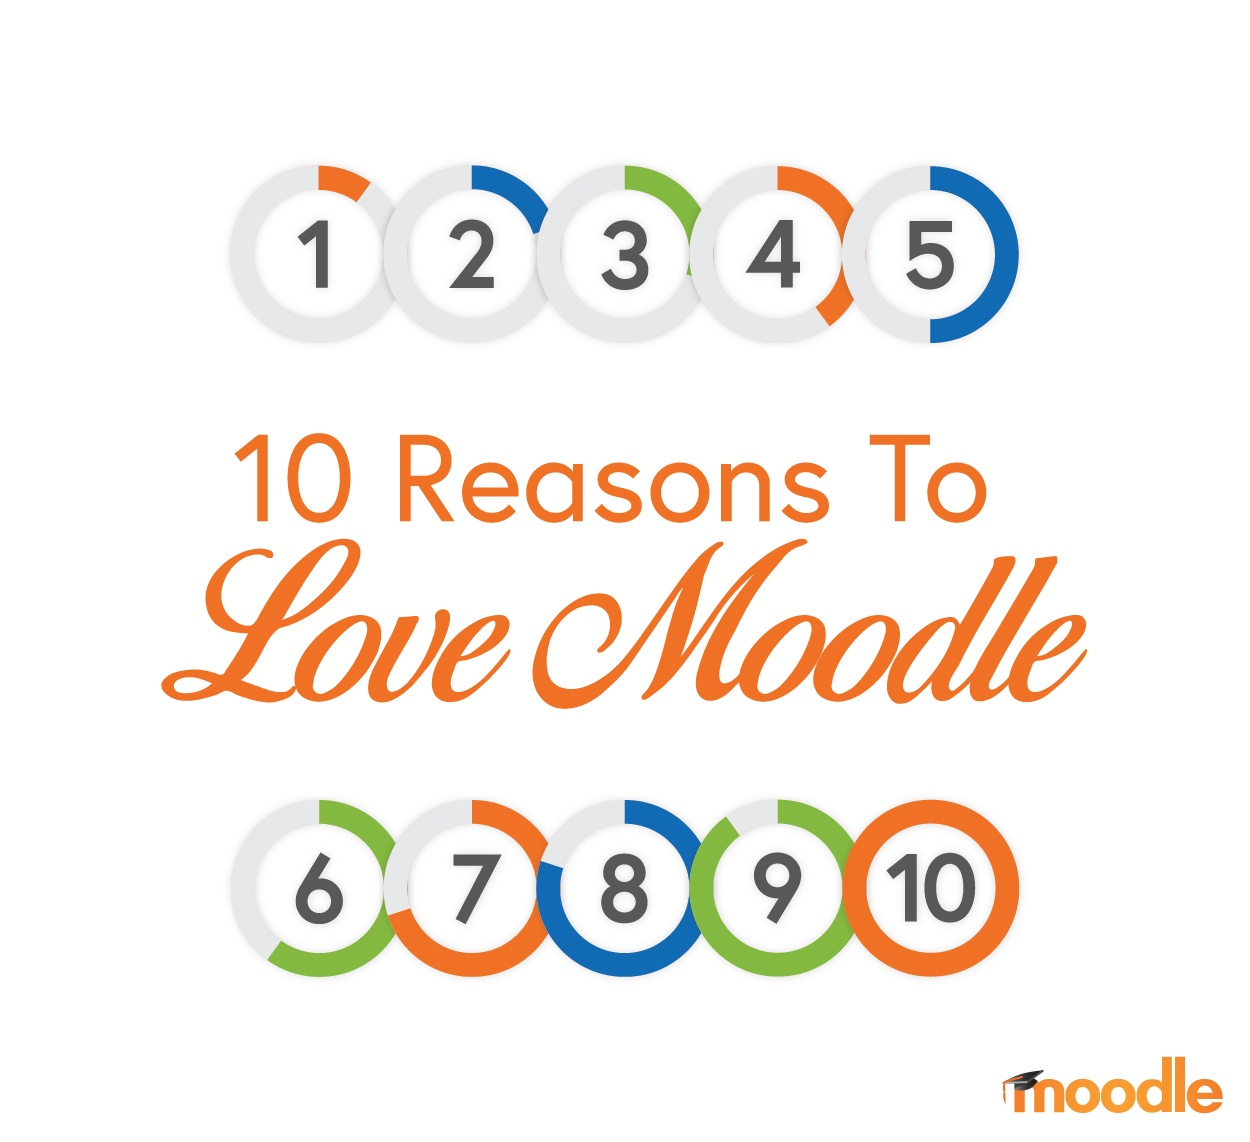 10 Reasons to Love Moodle-01